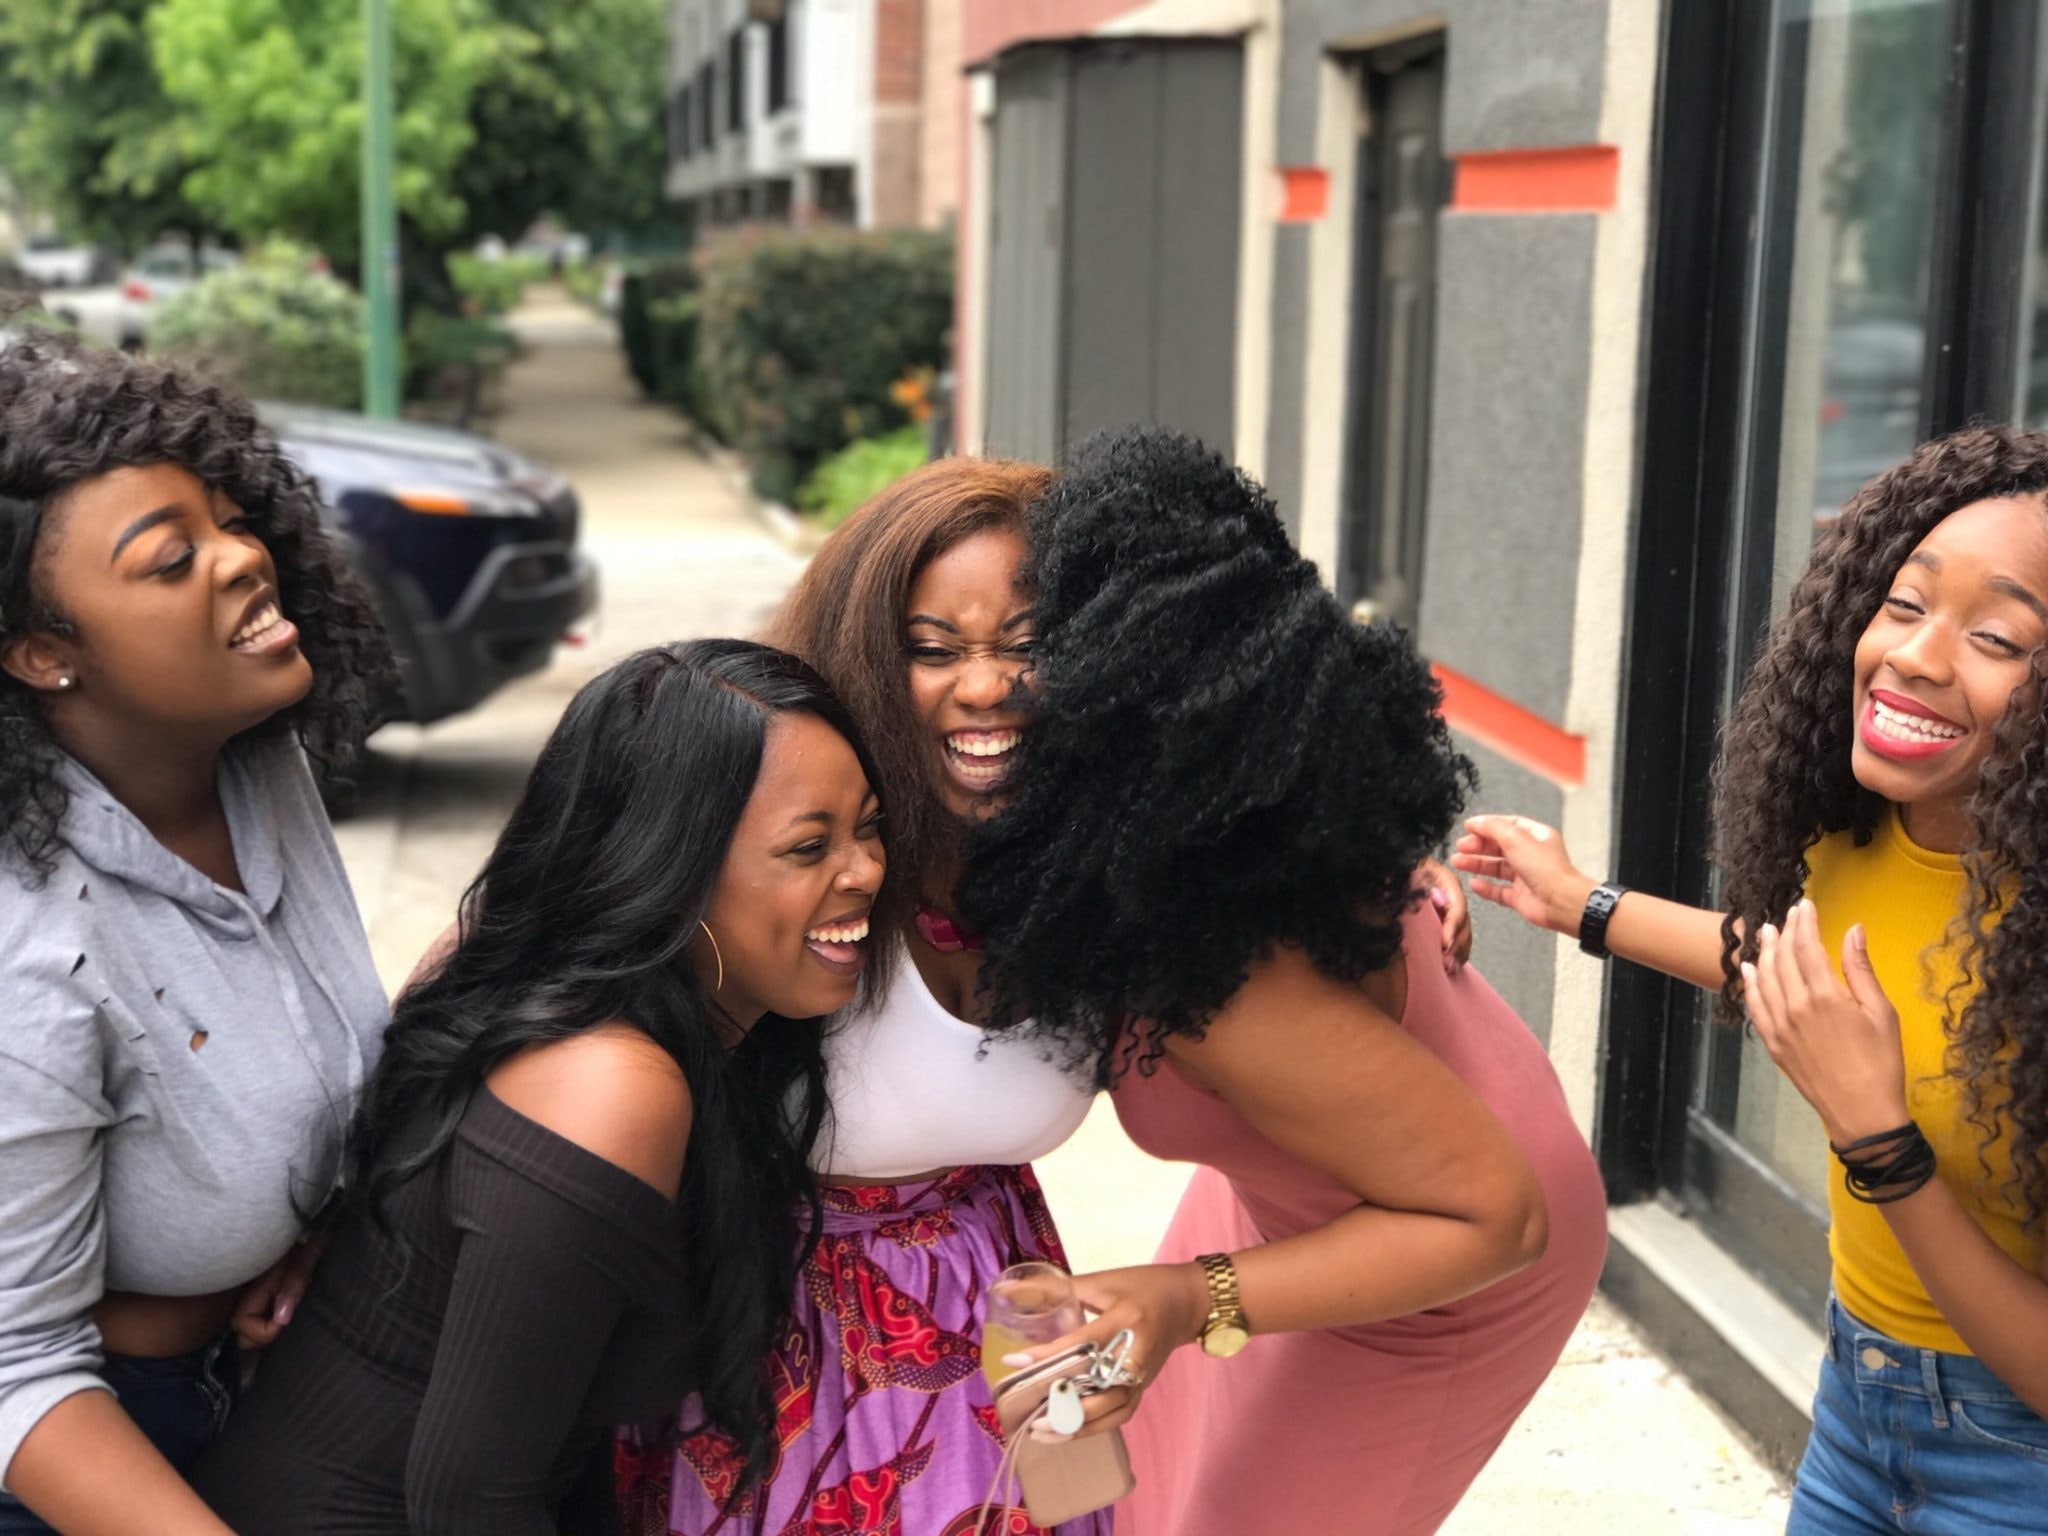 https://www.pexels.com/photo/five-women-laughing-936048/